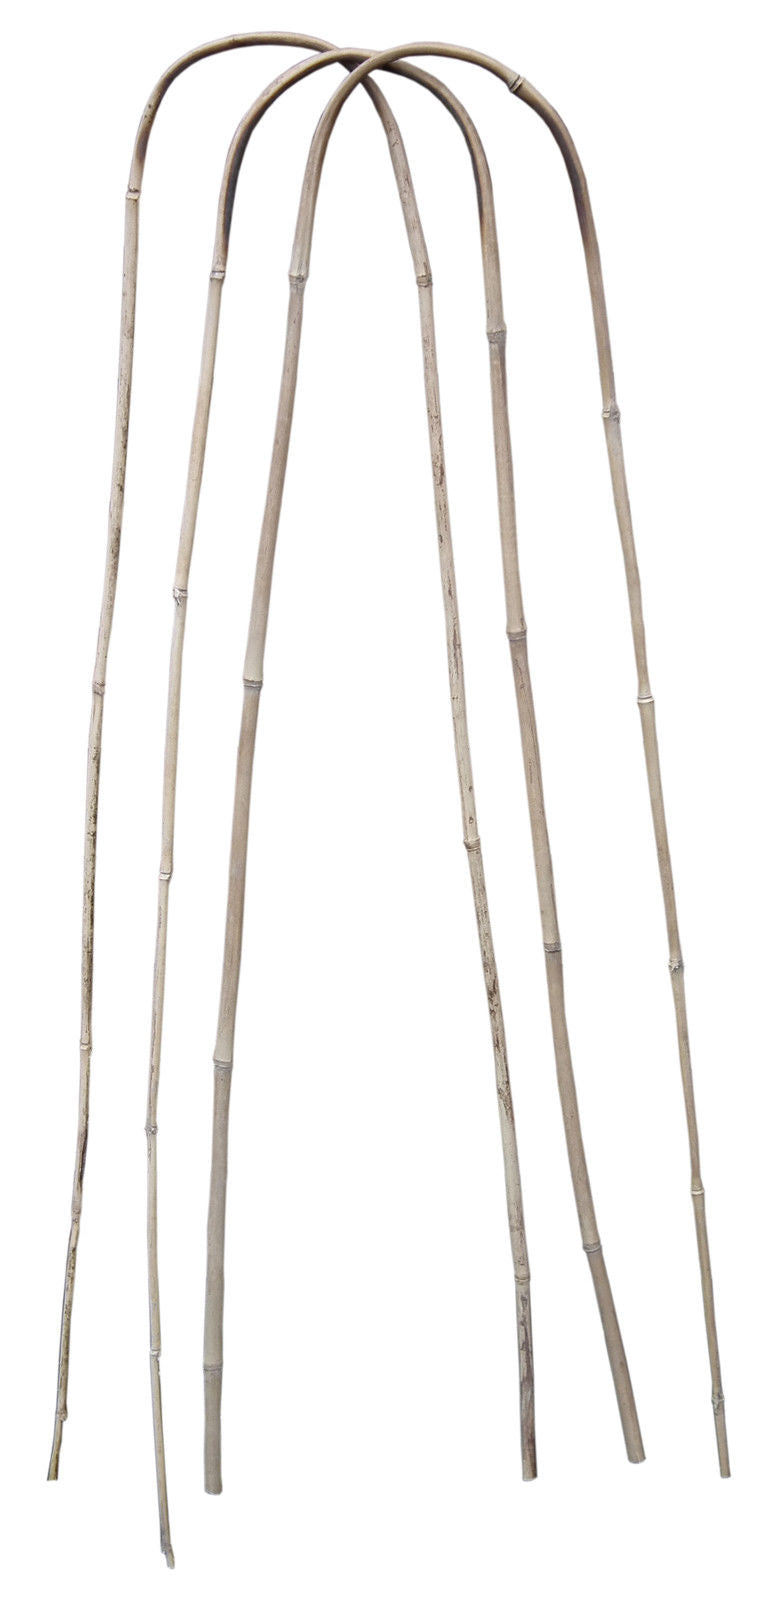 Pack of 3 U-Shape Bamboo Canes